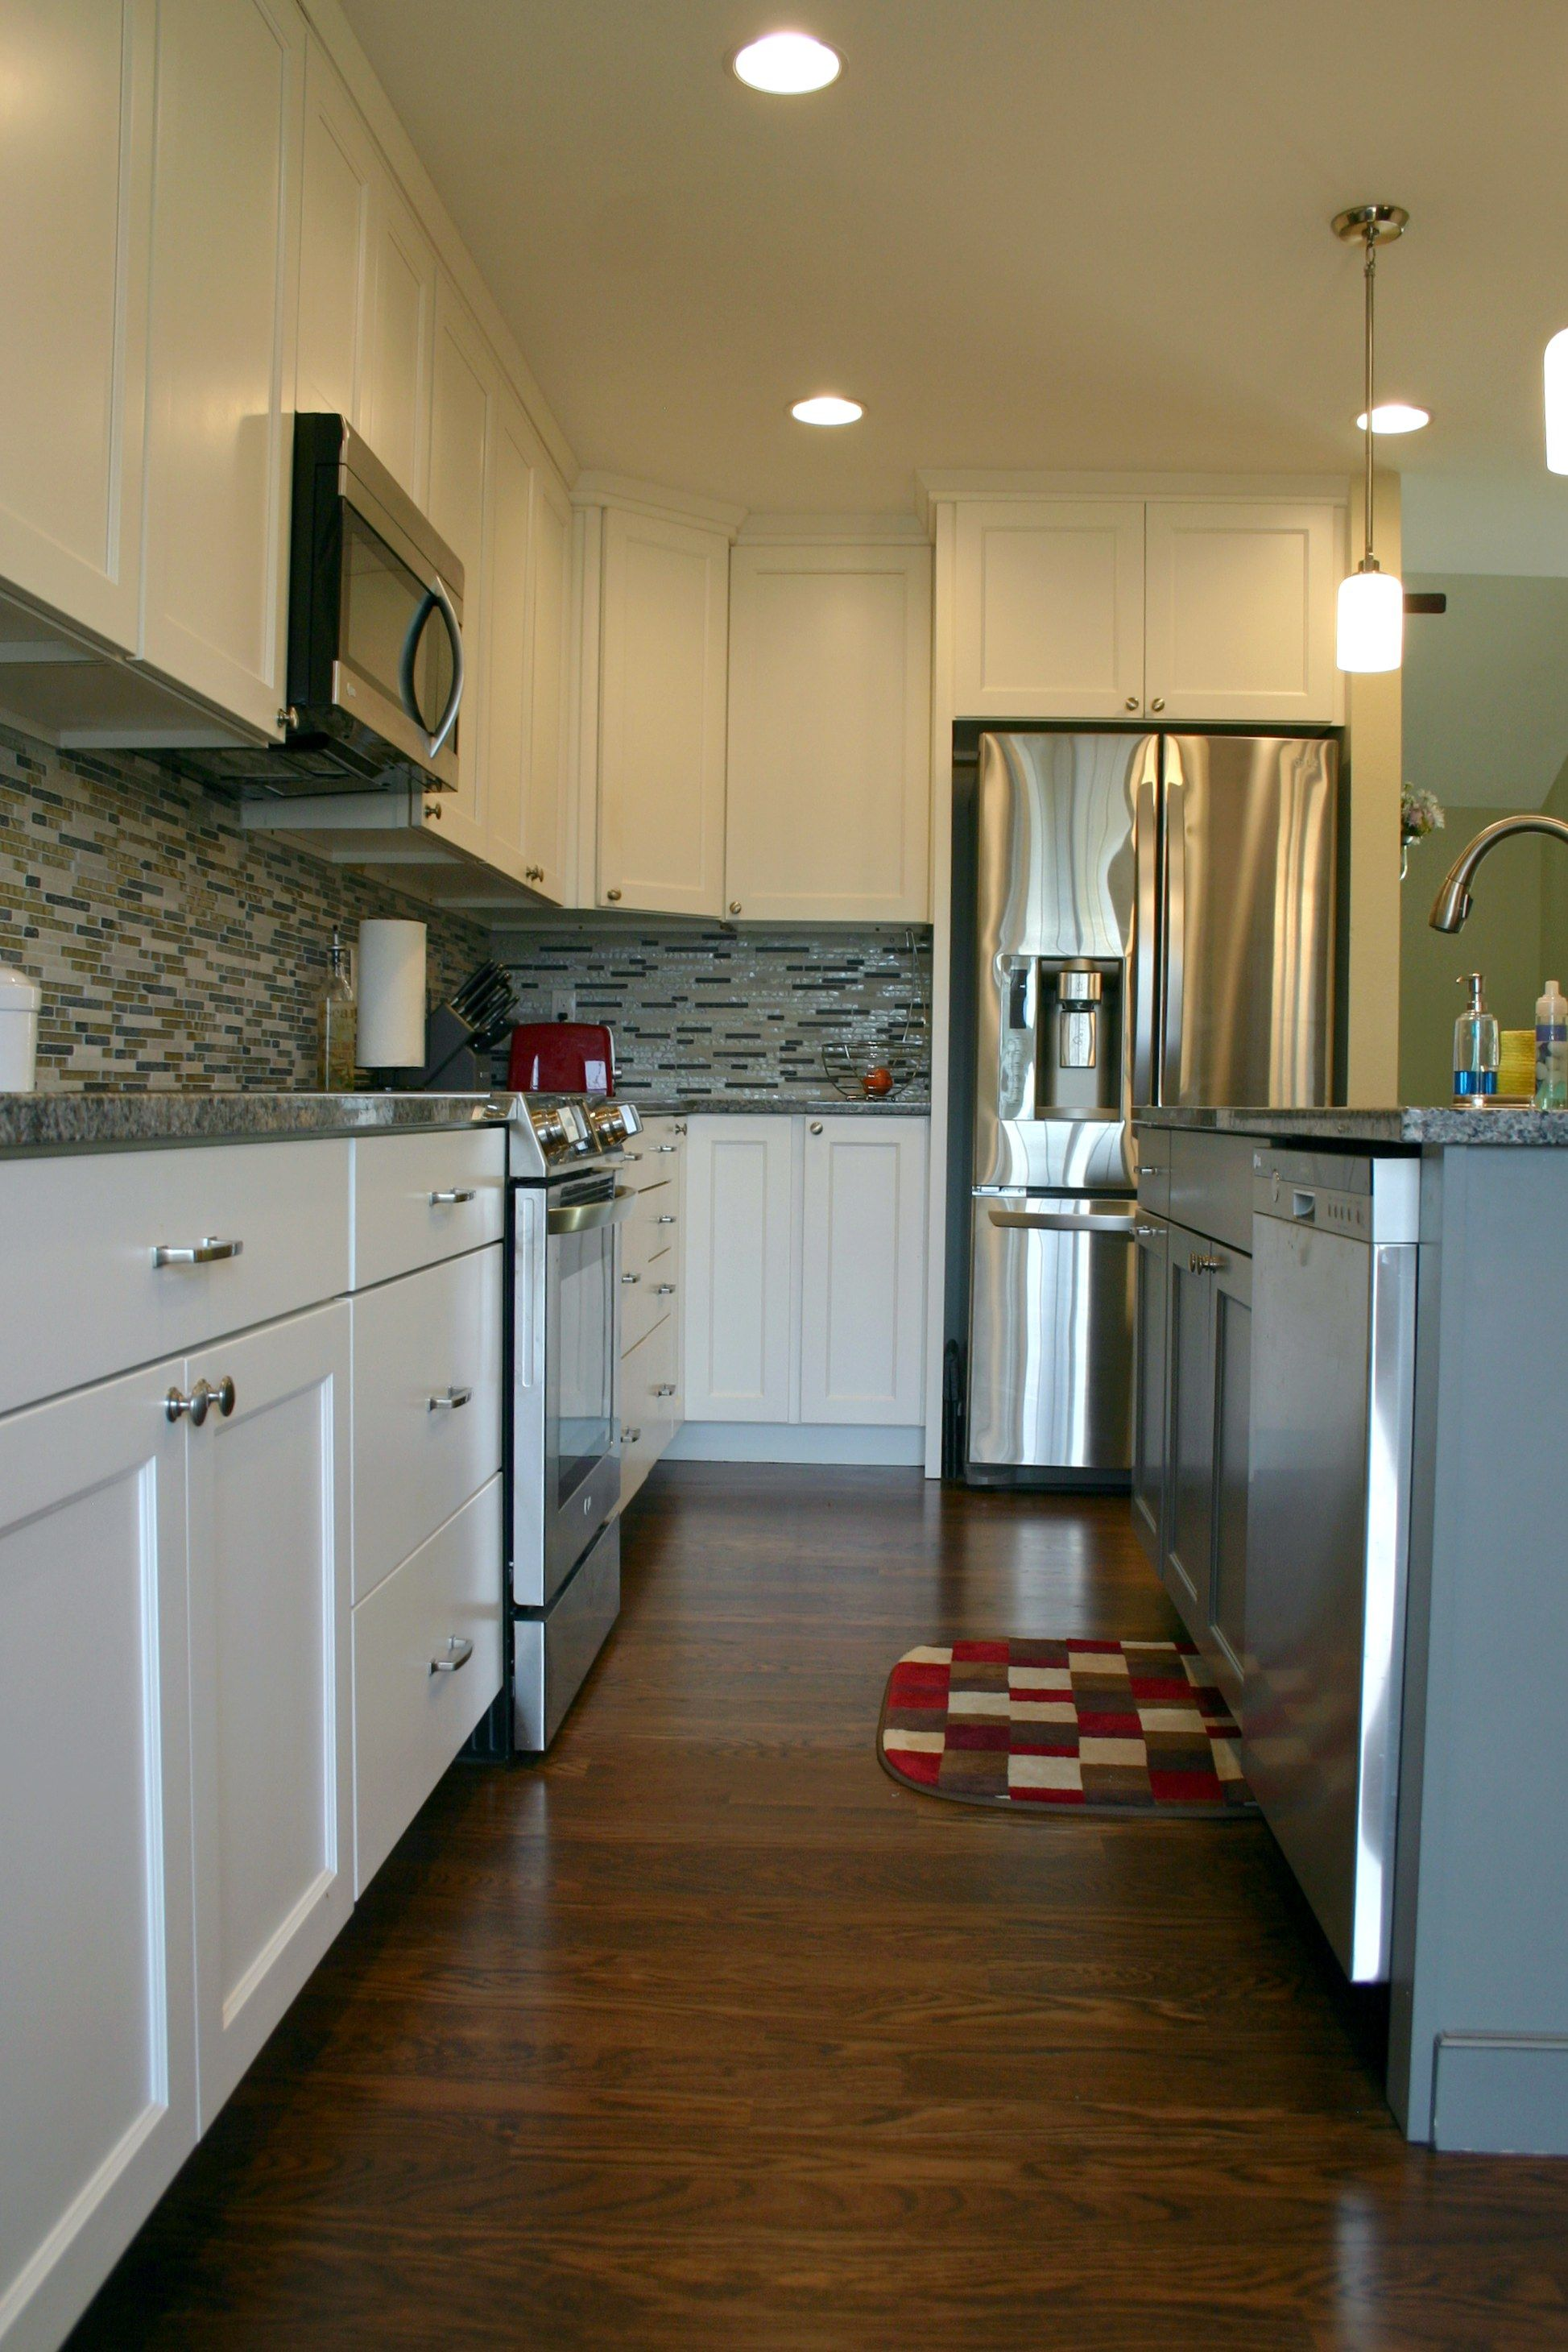 Bkc Kitchen And Bath Kitchen Remodel Mid Continent Cabinetry Parker Door Style White Paint On Maple Island Flint Kitchen And Bath Kitchen Kitchen Remodel